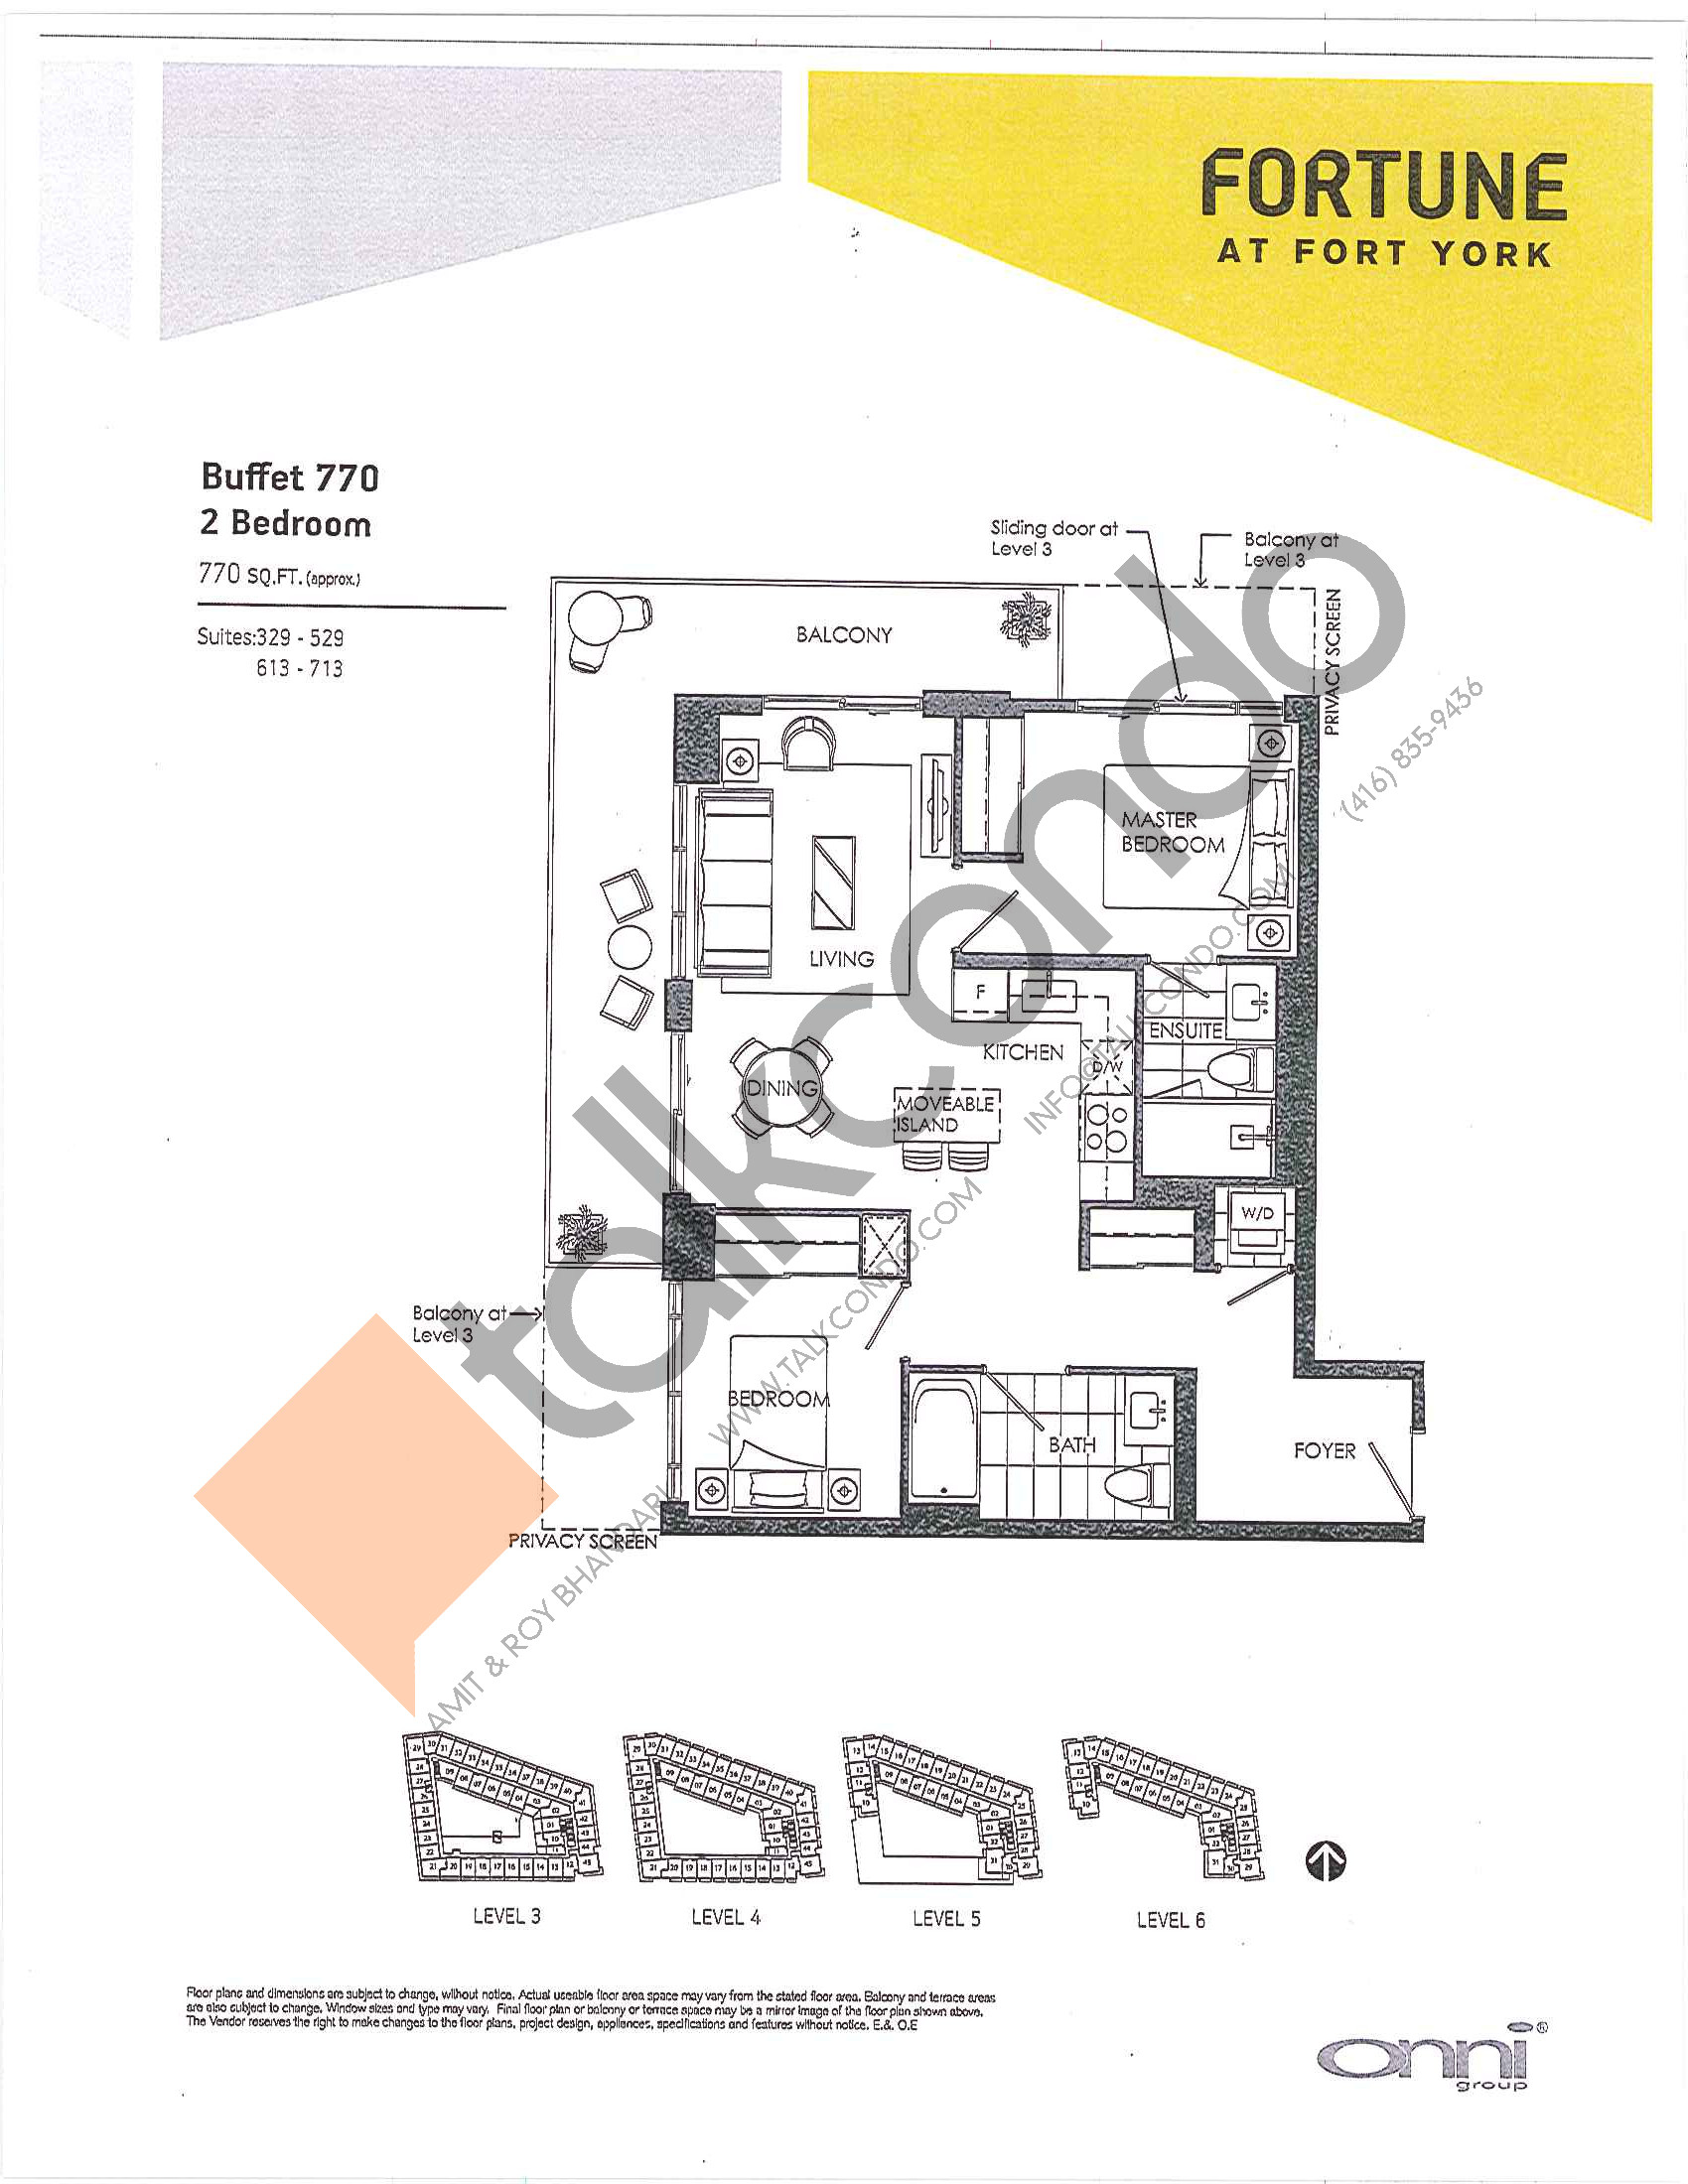 Buffet 770 Floor Plan at Fortune at Fort York - 770 sq.ft